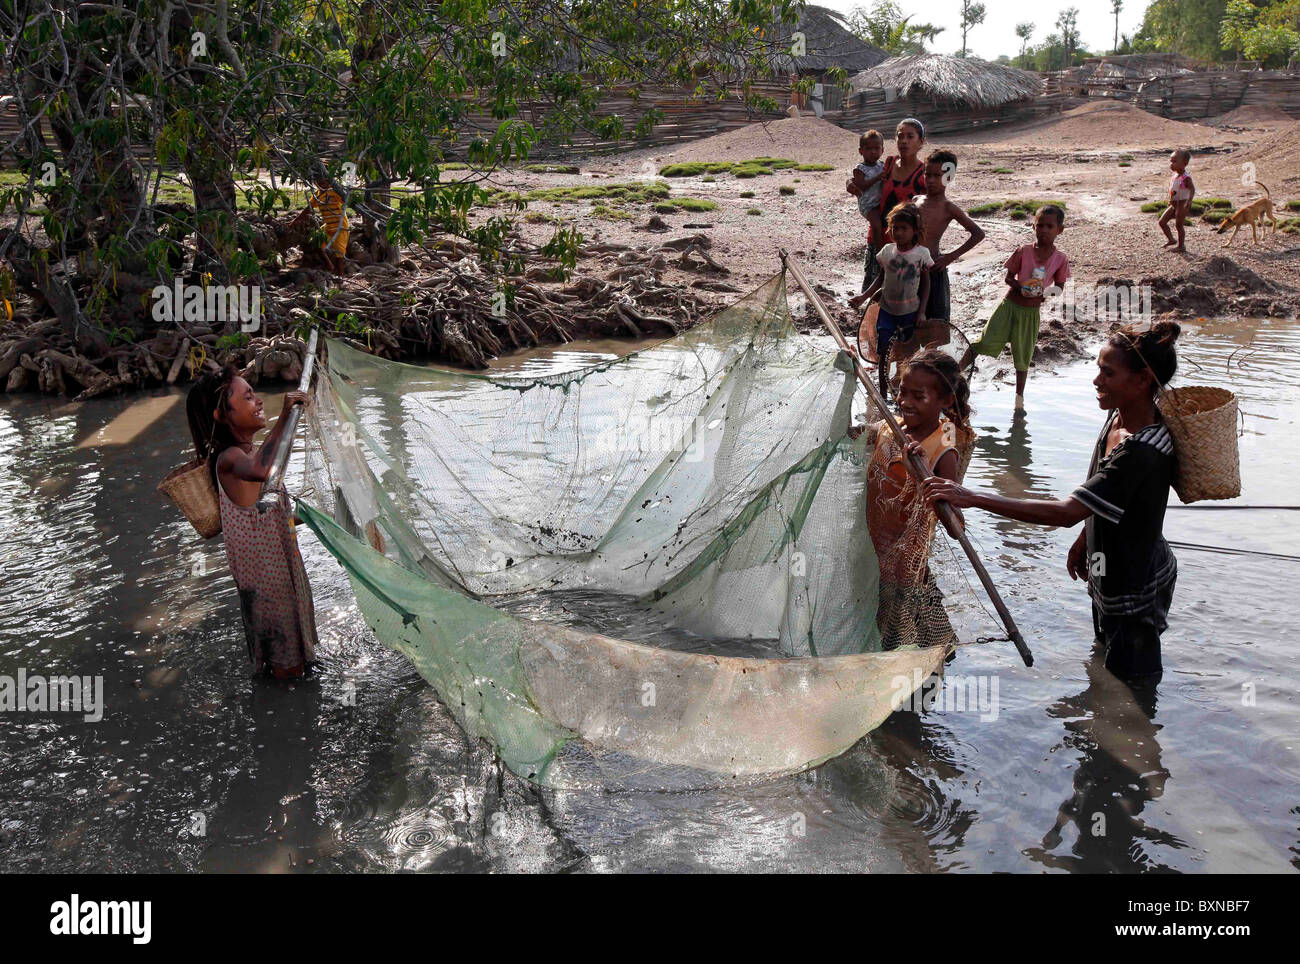 Children fishing with a net, near Liquica, Timor Leste (East Timor) - Stock Image